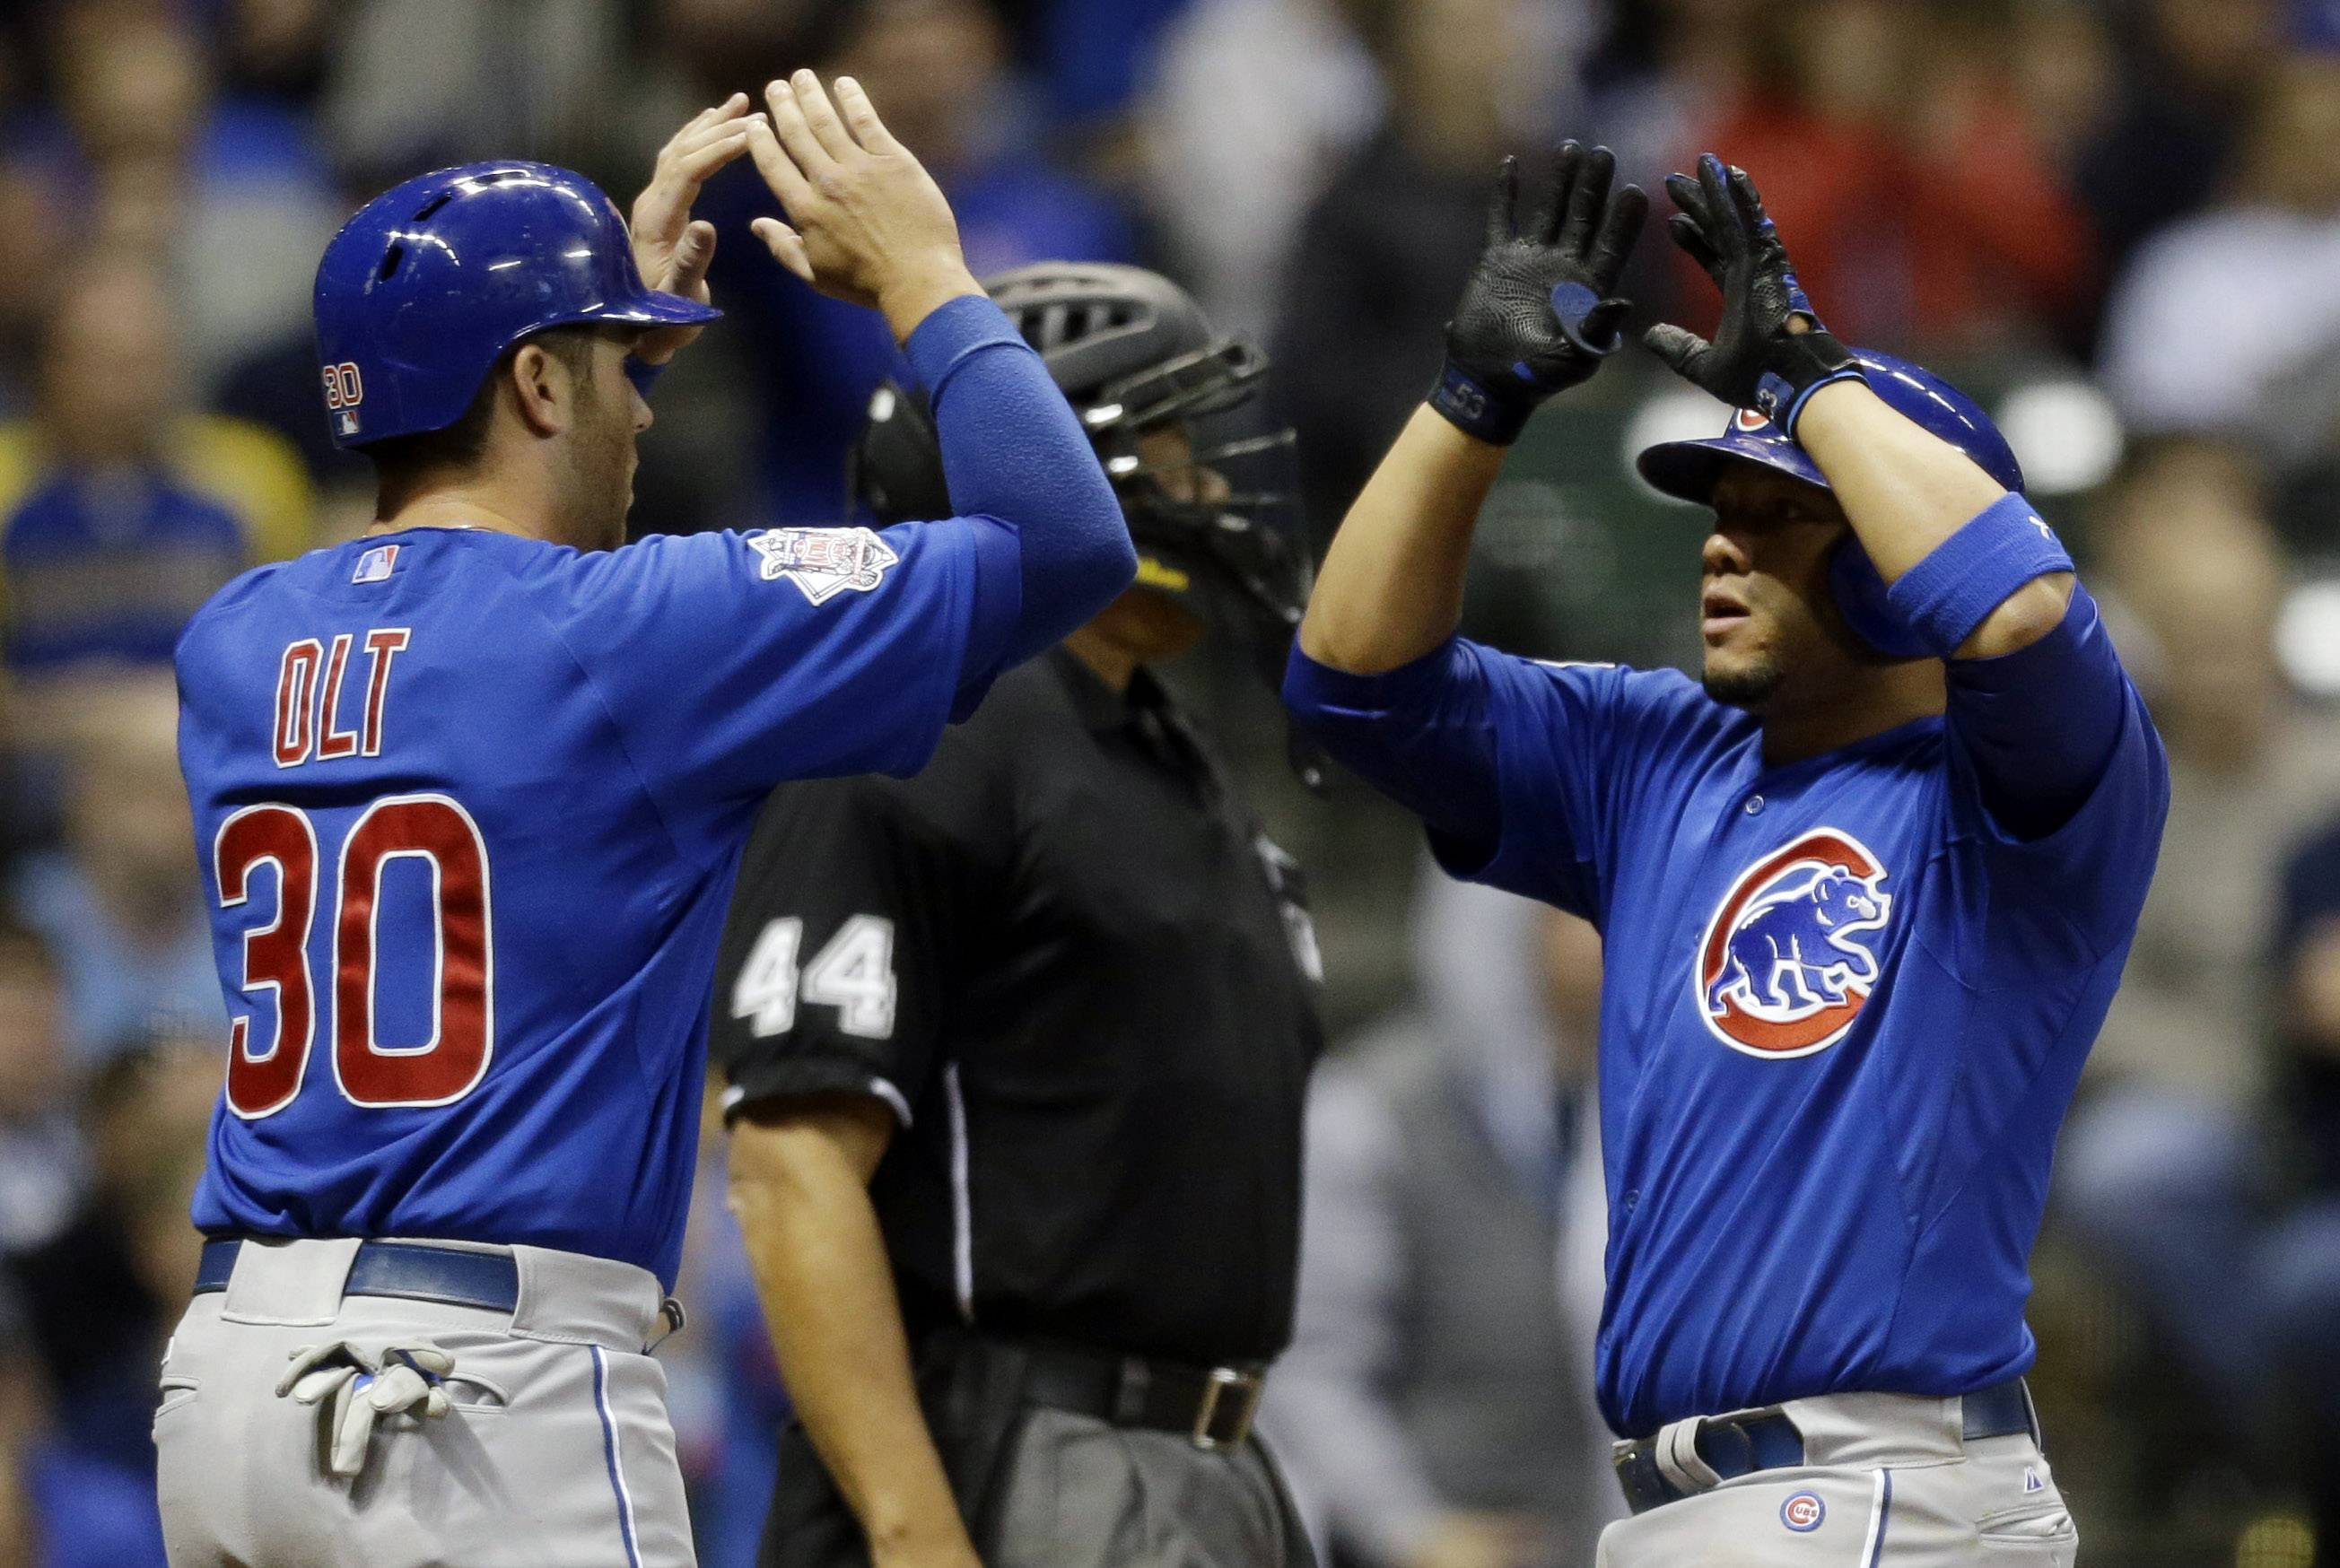 Cubs show more life but still stumble